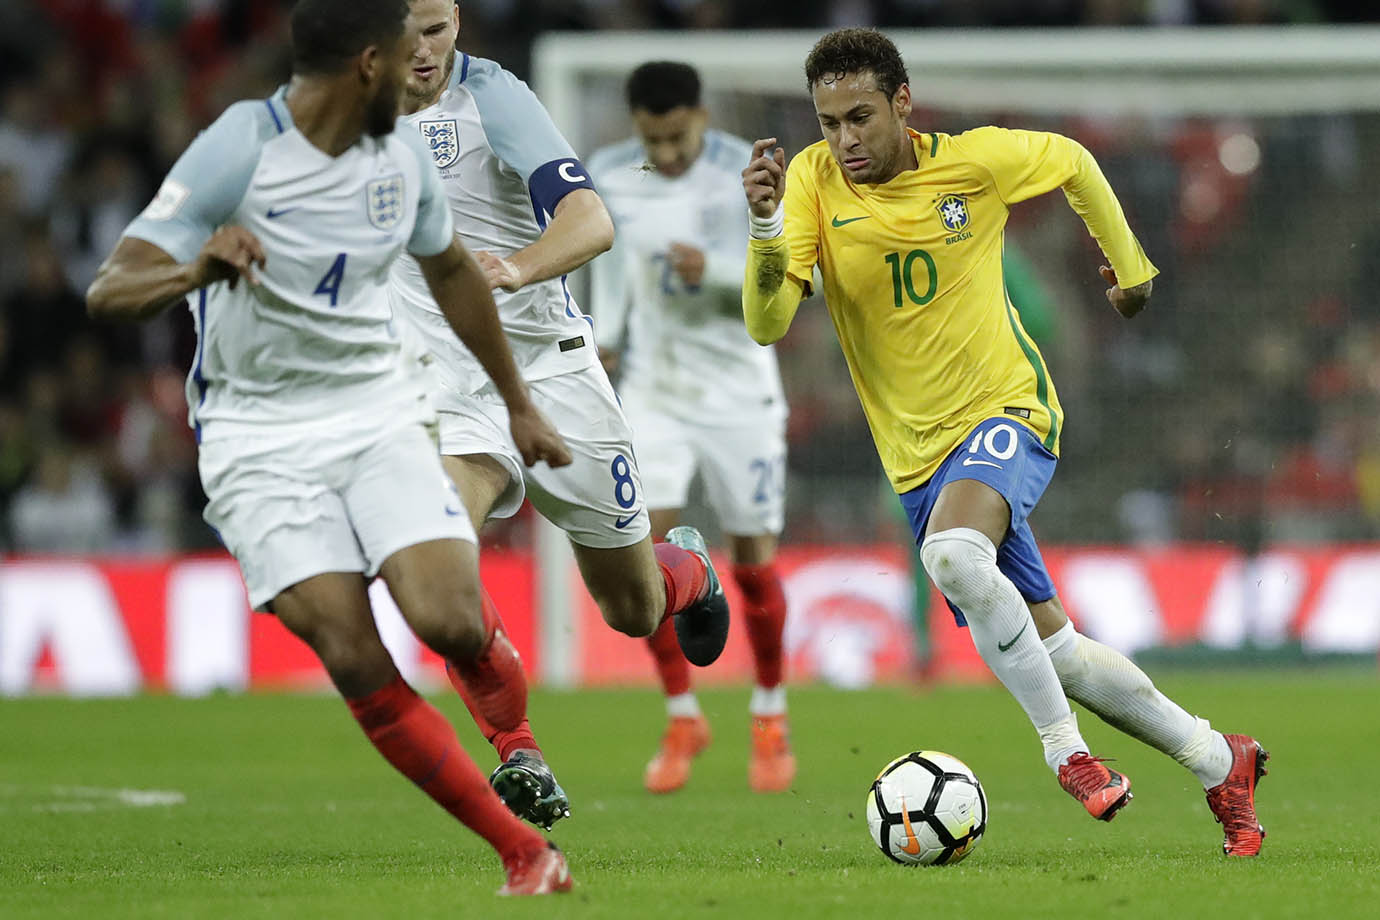 Brazil's Neymar takes the ball forward watched by England's Joe Gomez, left, and Eric Dier.